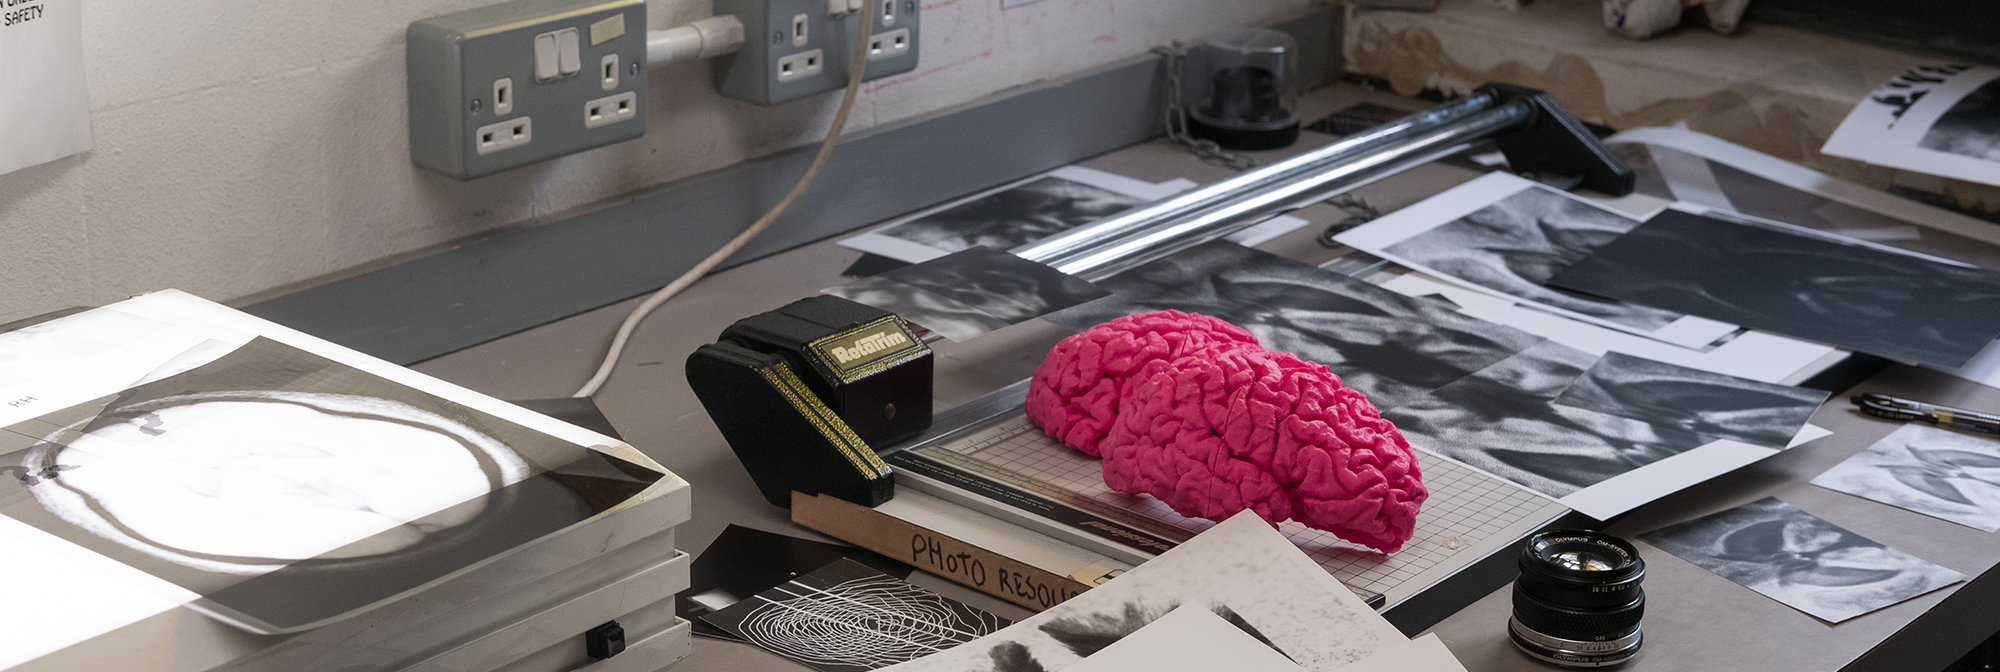 A bright pink model of a brain sits on a desk next to scanning equipment, a guillotine and a black and white print out of a brain scan.